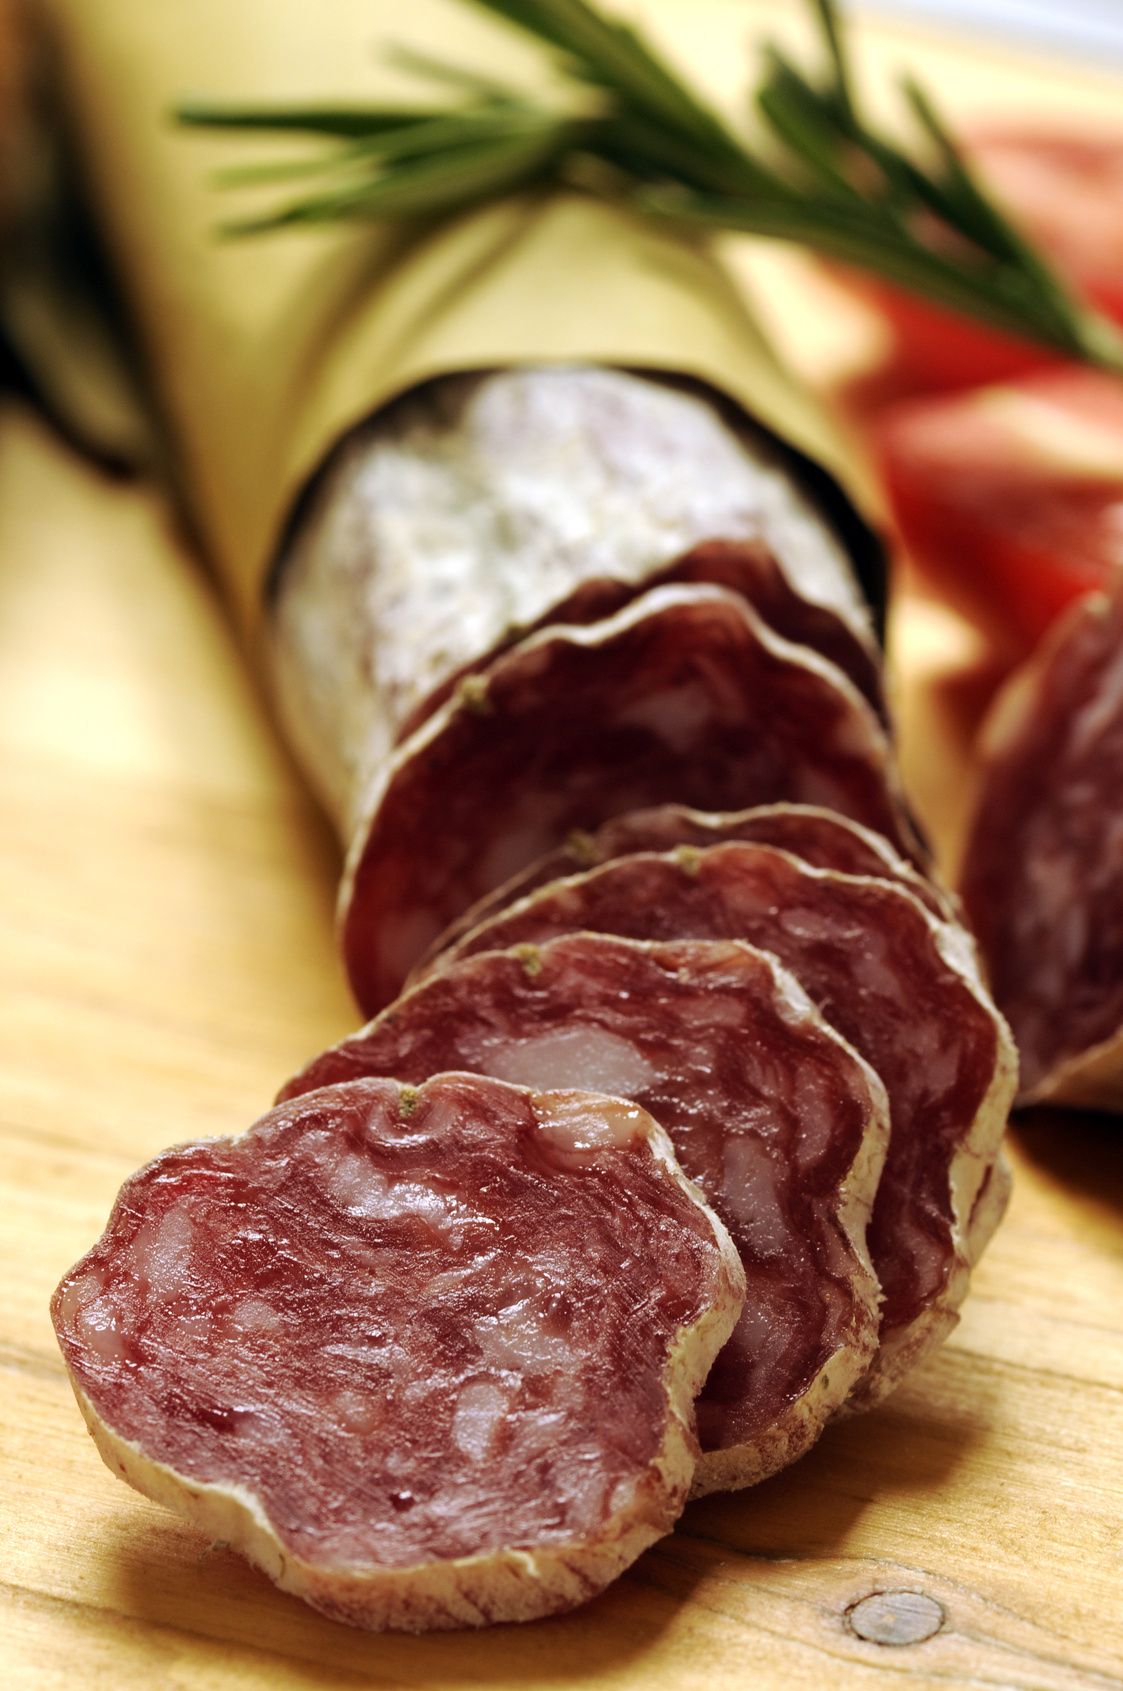 Strolghino di culatello